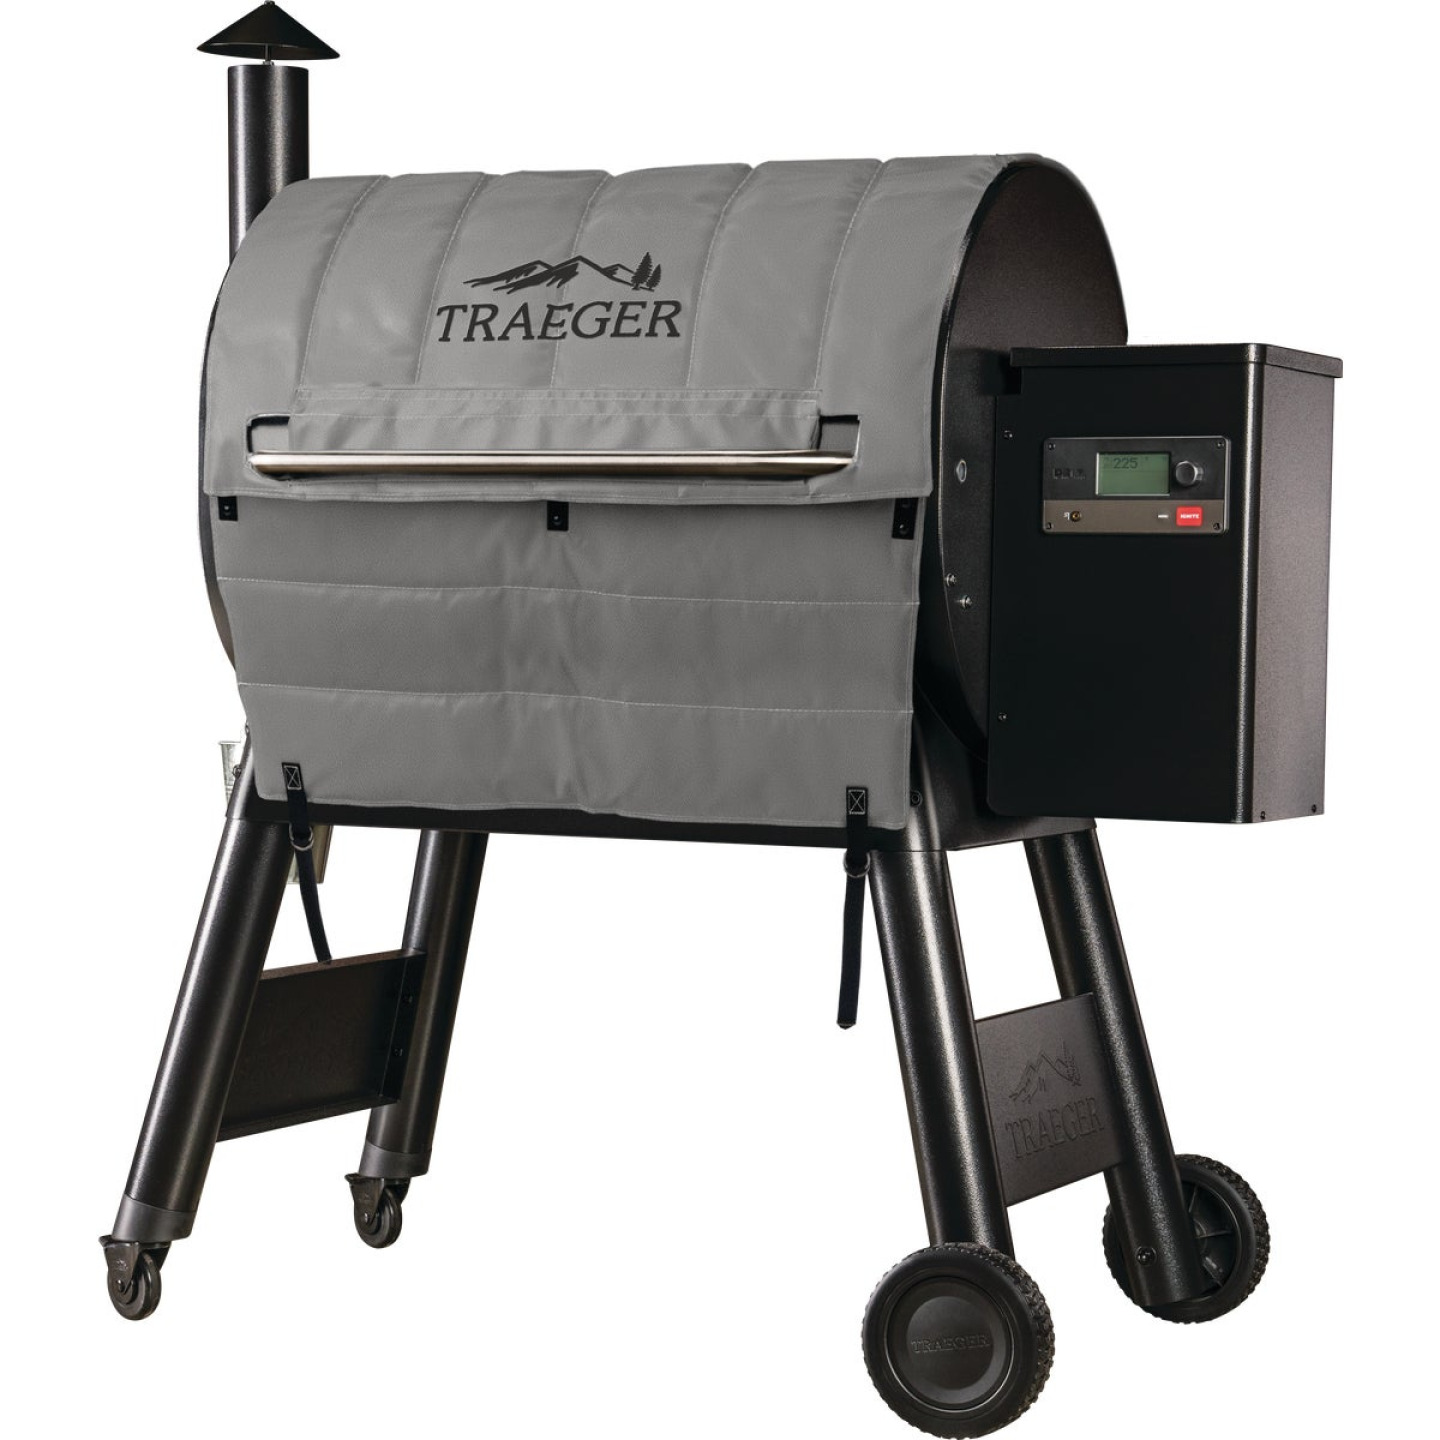 Traeger Pro 780 48.6 In. Gray Foil-Backed Heat-Resistant Fabric Insulated Blanket Grill Cover Image 1